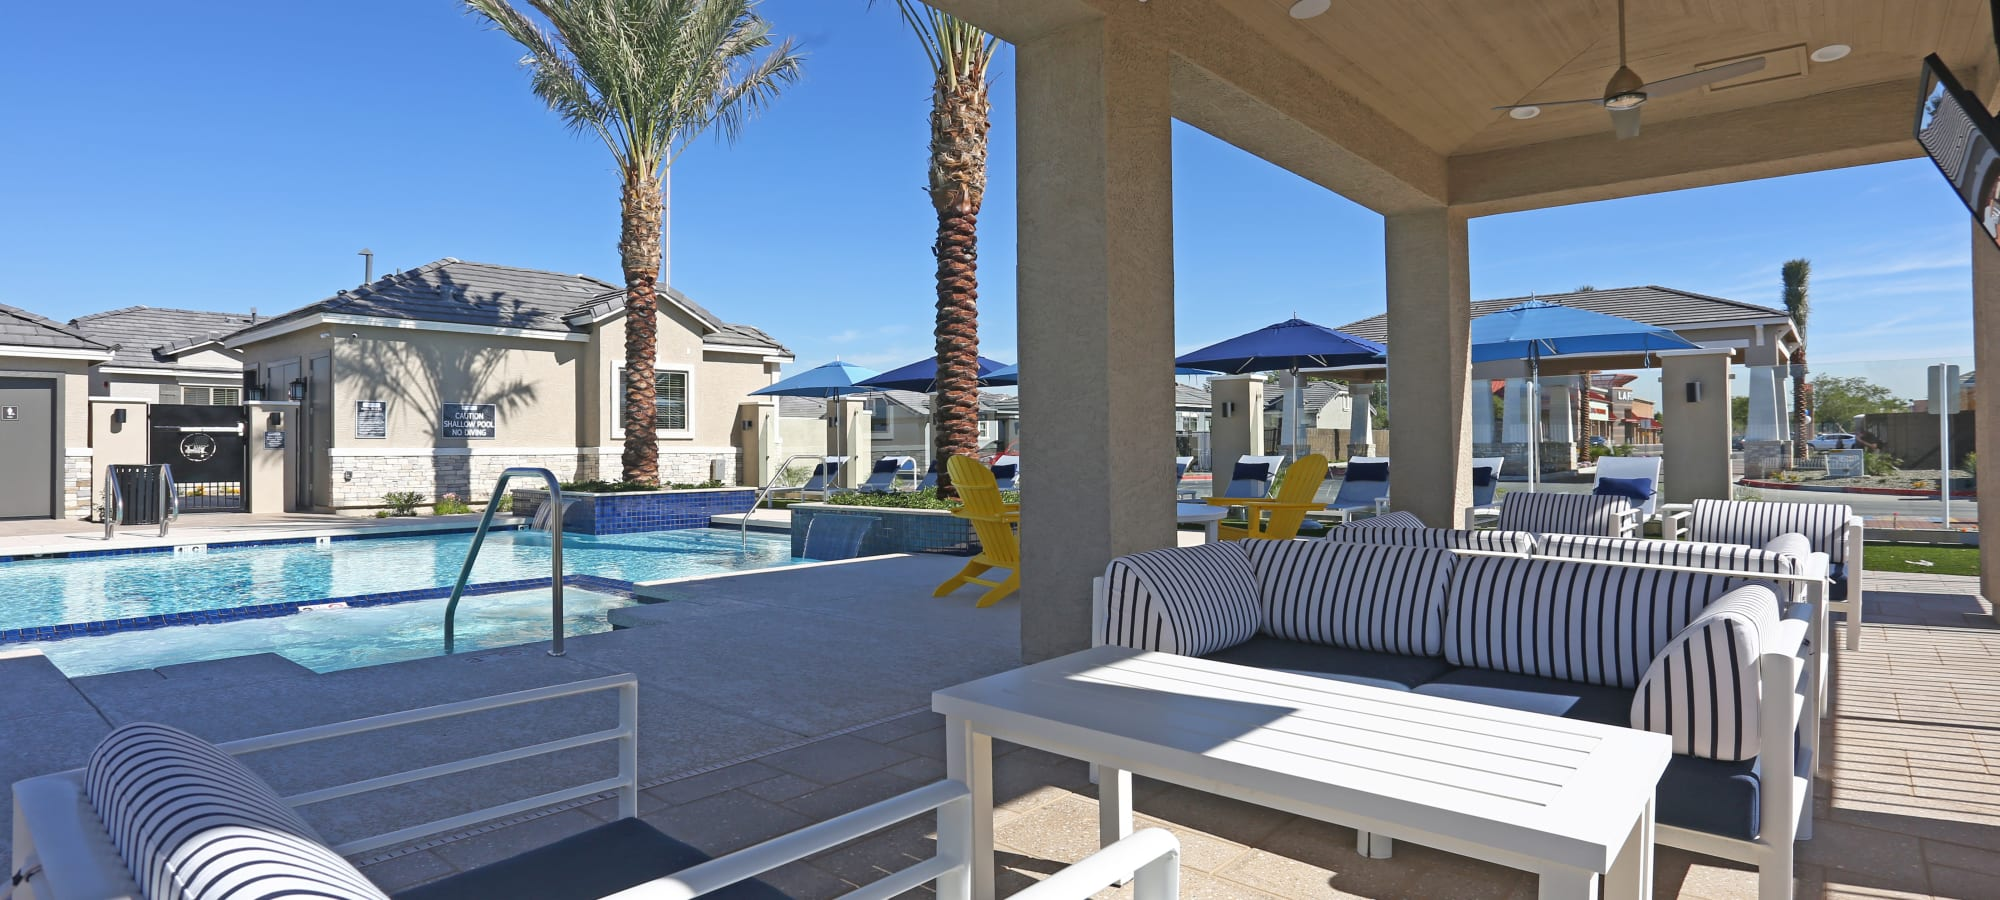 Lounge seating near the pool at Christopher Todd Communities On Happy Valley in Peoria, Arizona